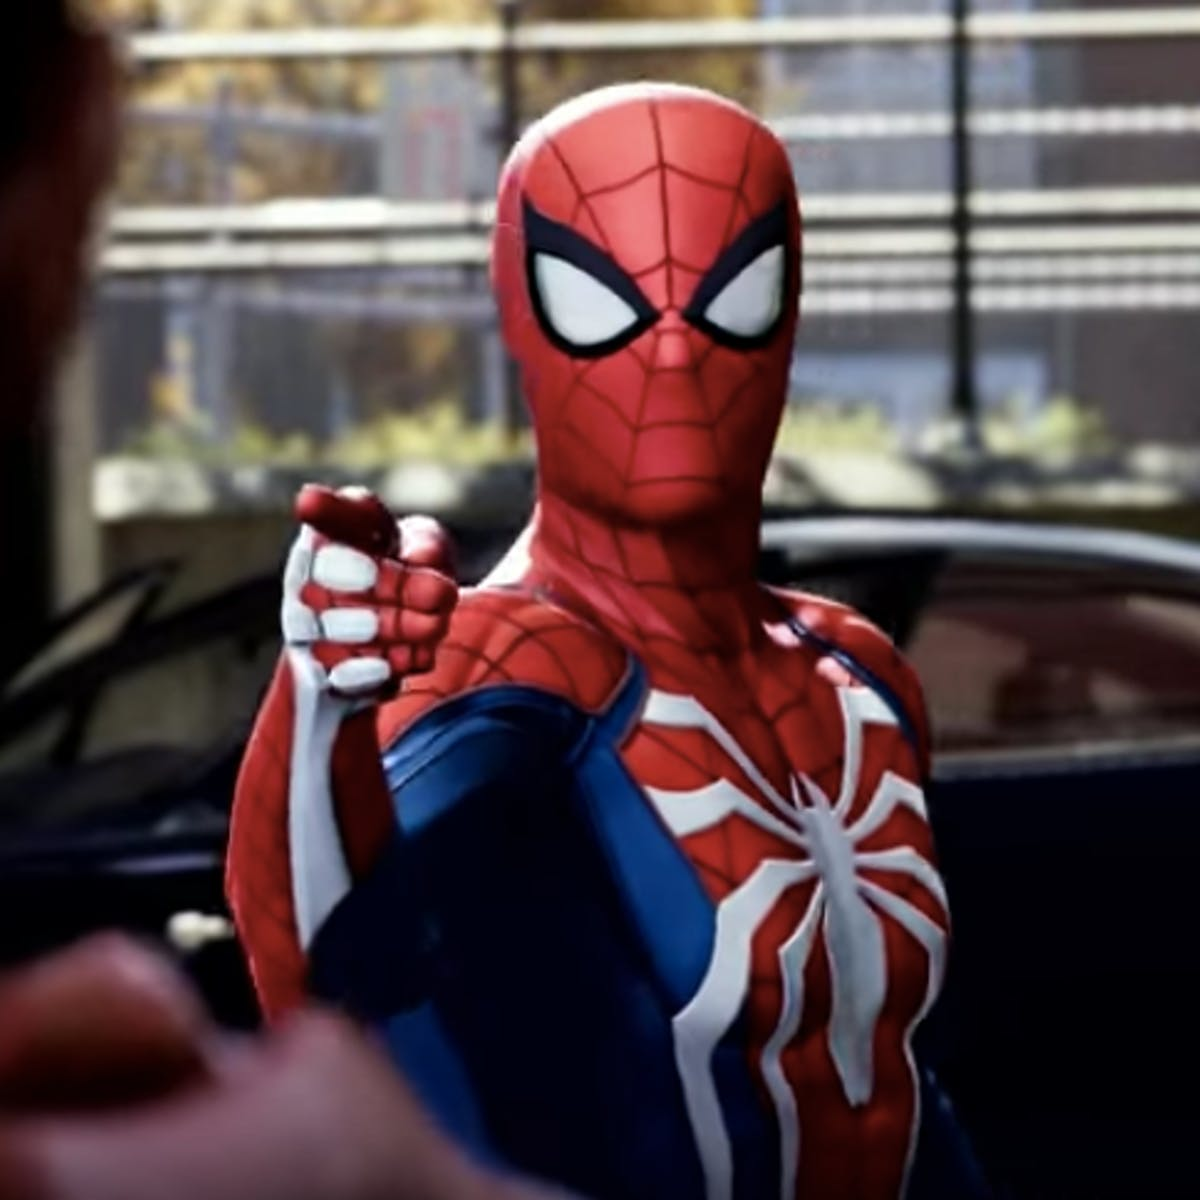 58abf44b018053  Spider-Man  PS4  Miles Morales Meets Spidey in New Video Game Trailer